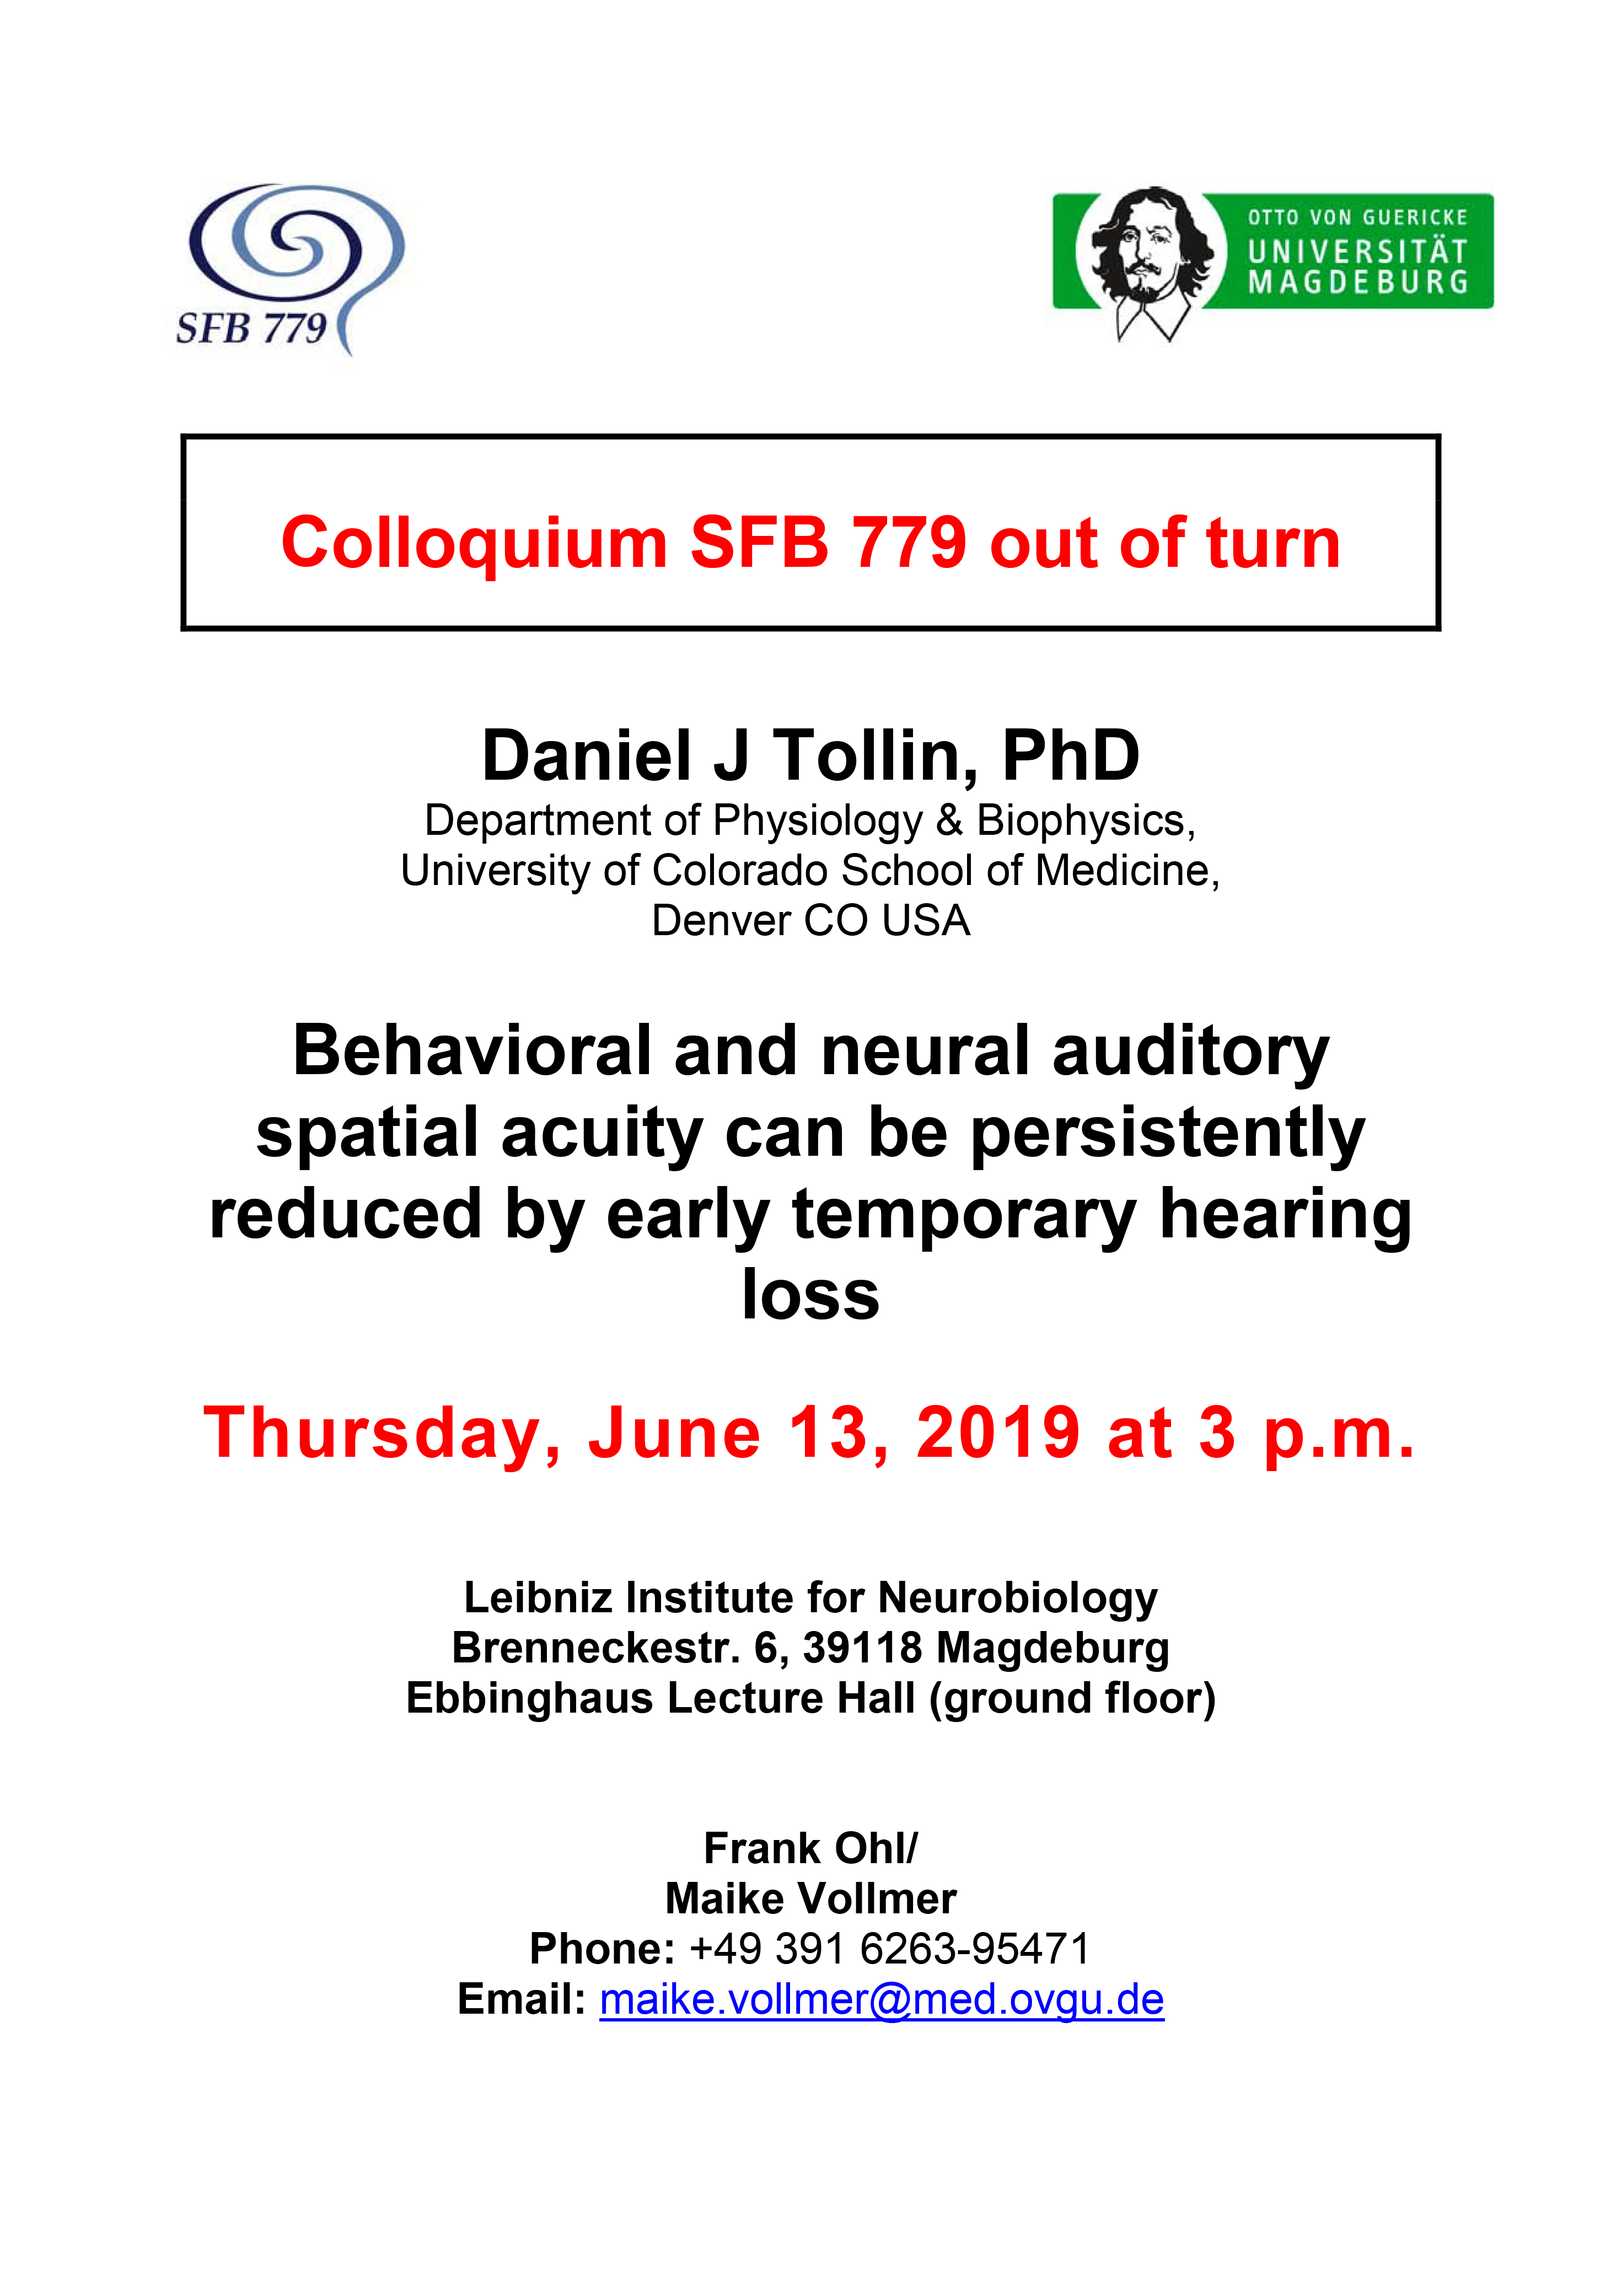 CRC 779: Behavioral and neural auditory spatial acuity can be persistently reduced by early temporary hearing loss @ Ebbinghaus Lecture Hall, Leibniz Institute for Neurobiology